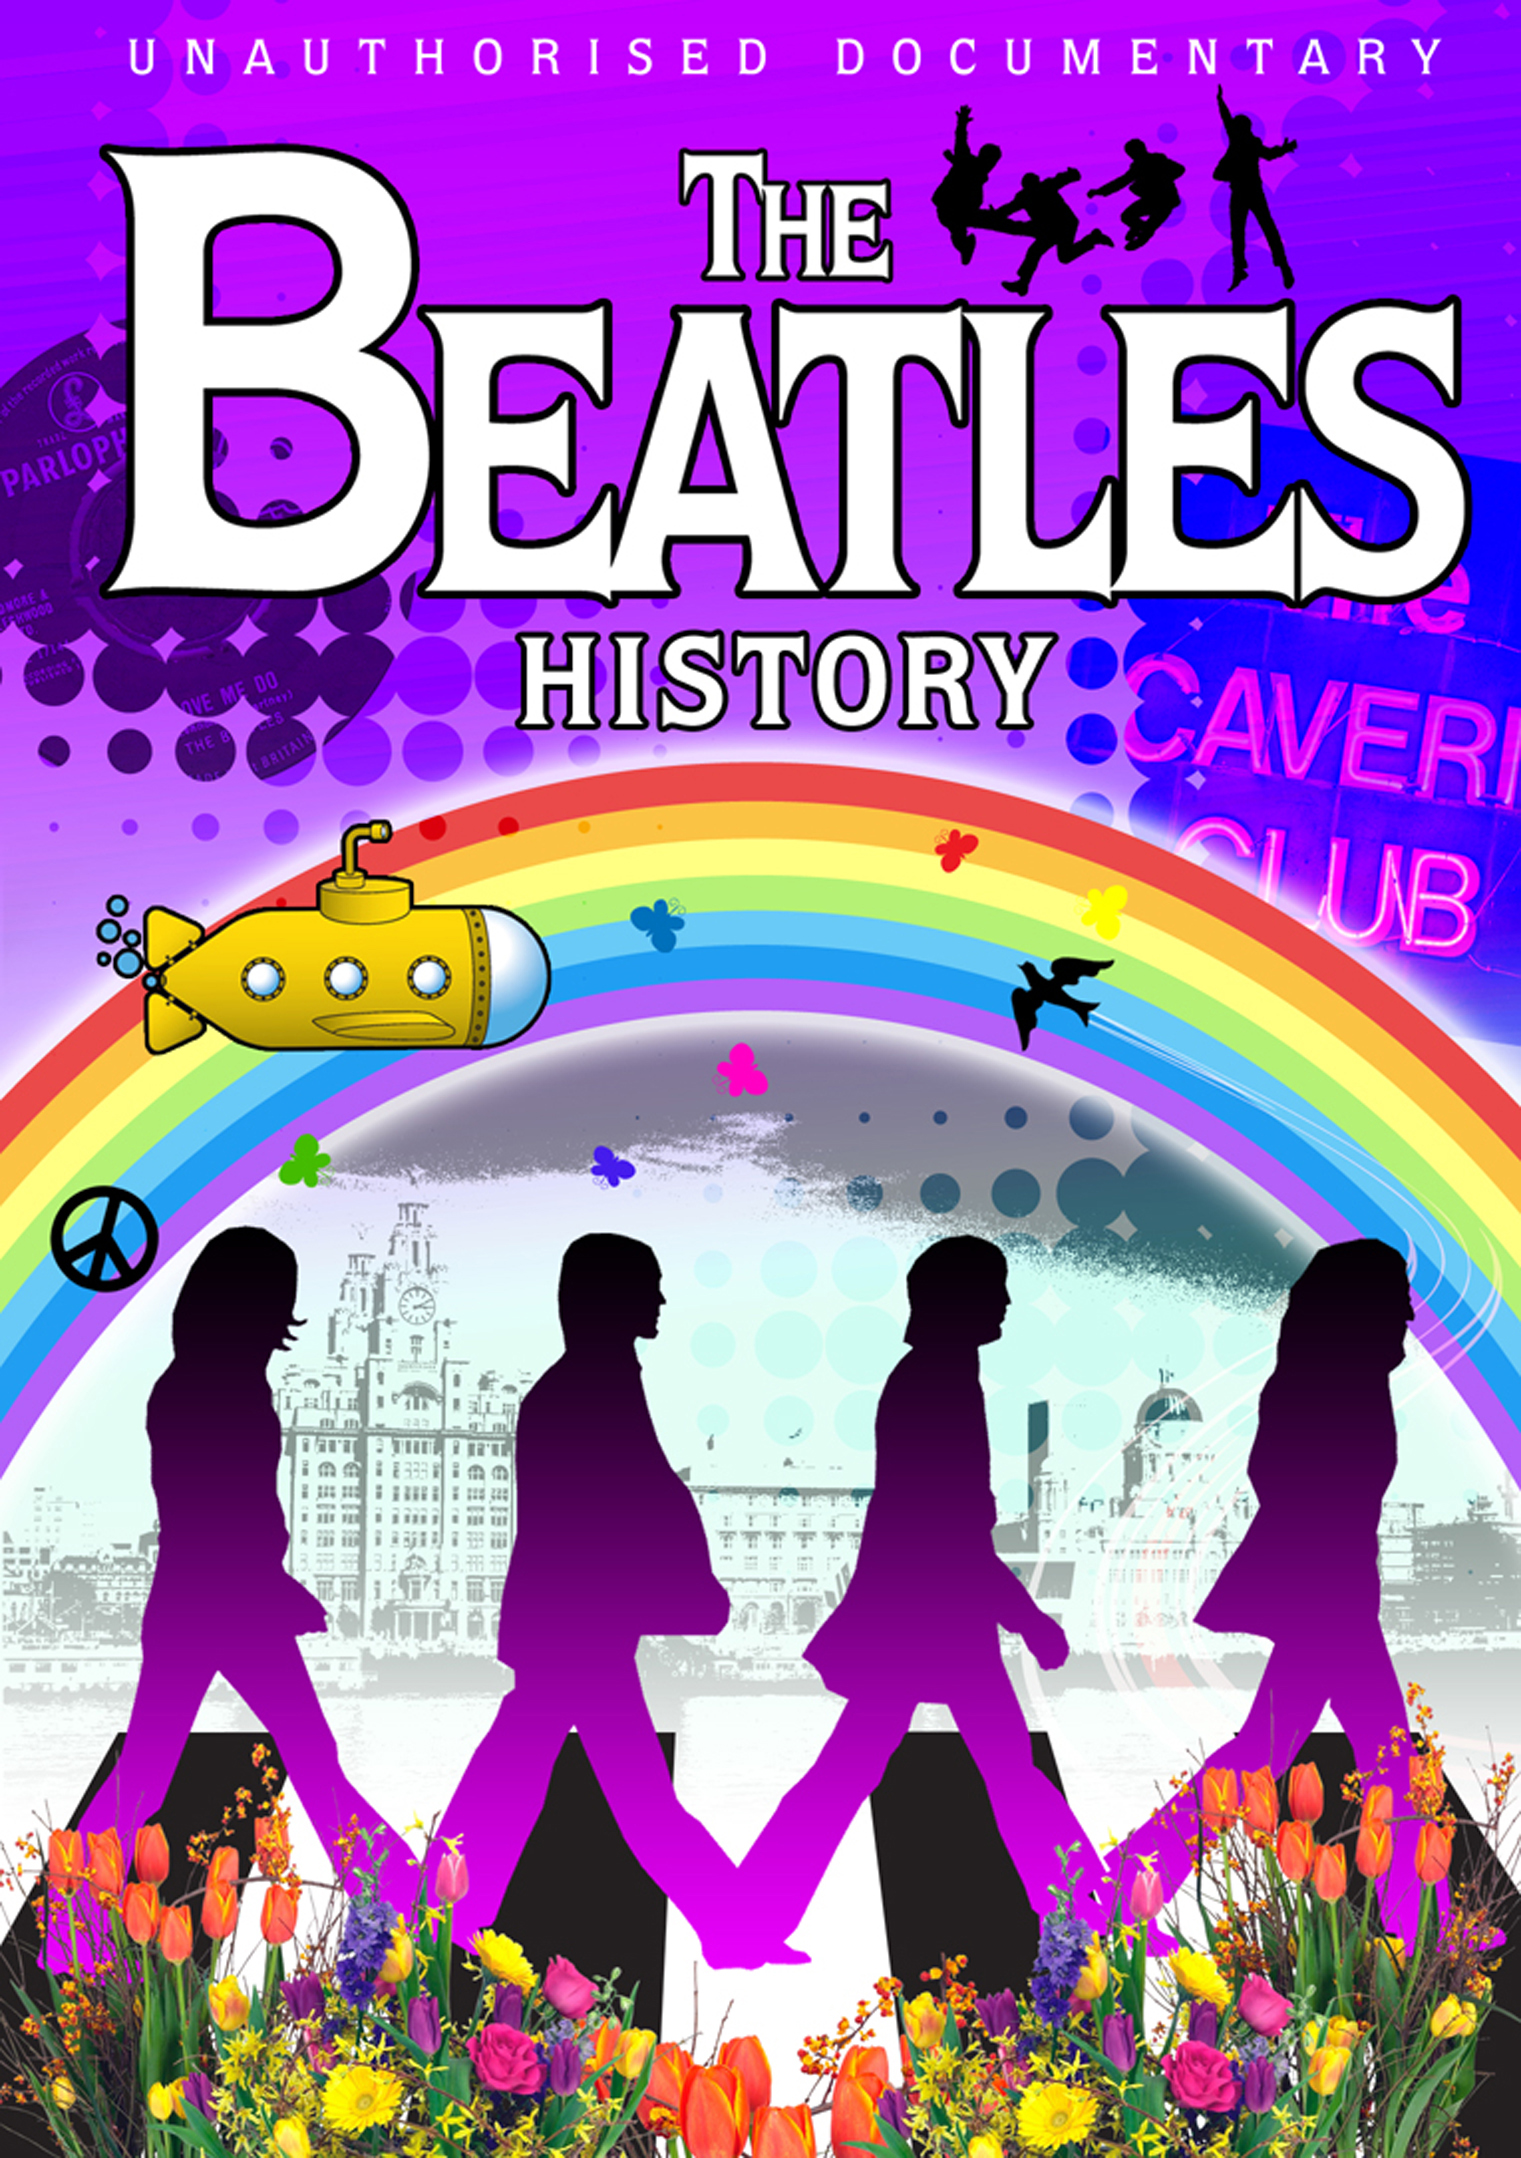 The Beatles: History